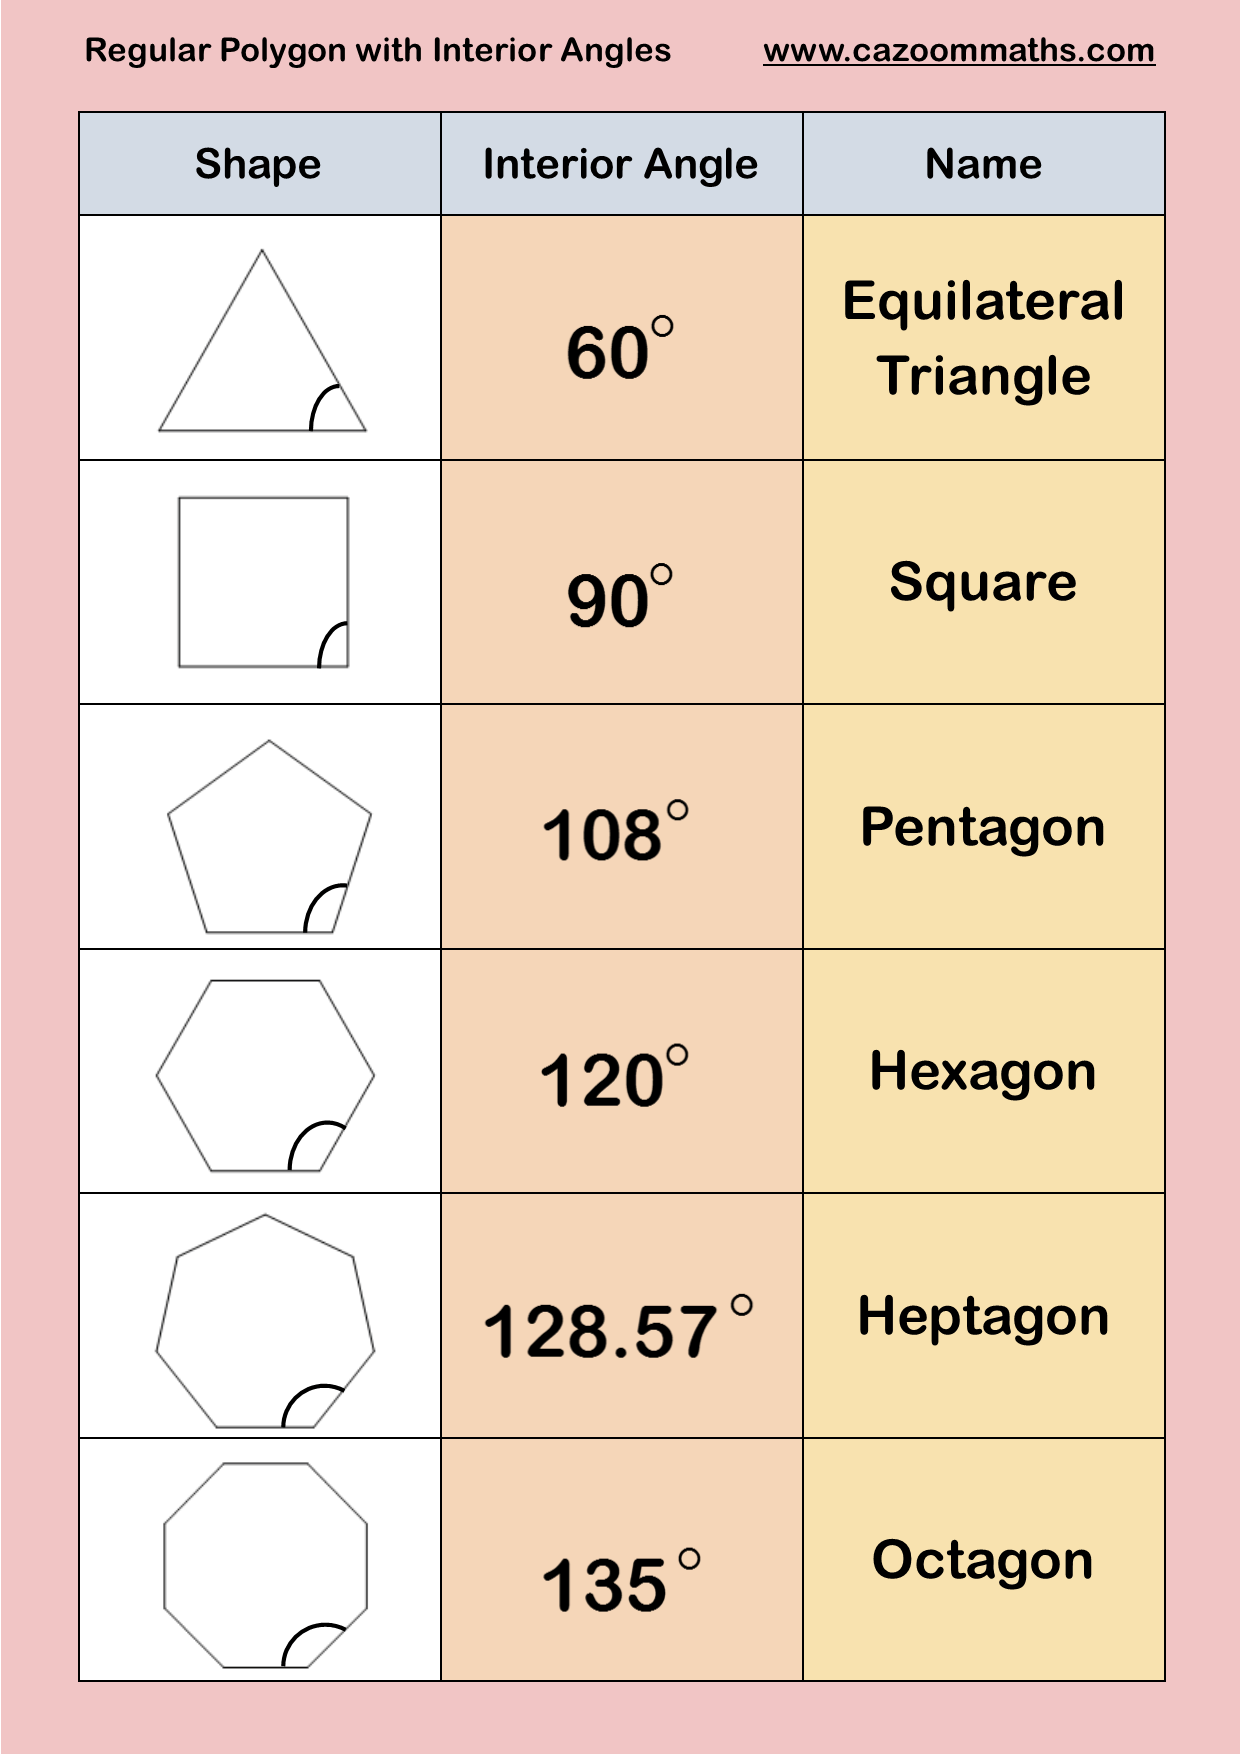 Regular Polygons With Interior Angles Maths Pinterest Regular Polygon And Math